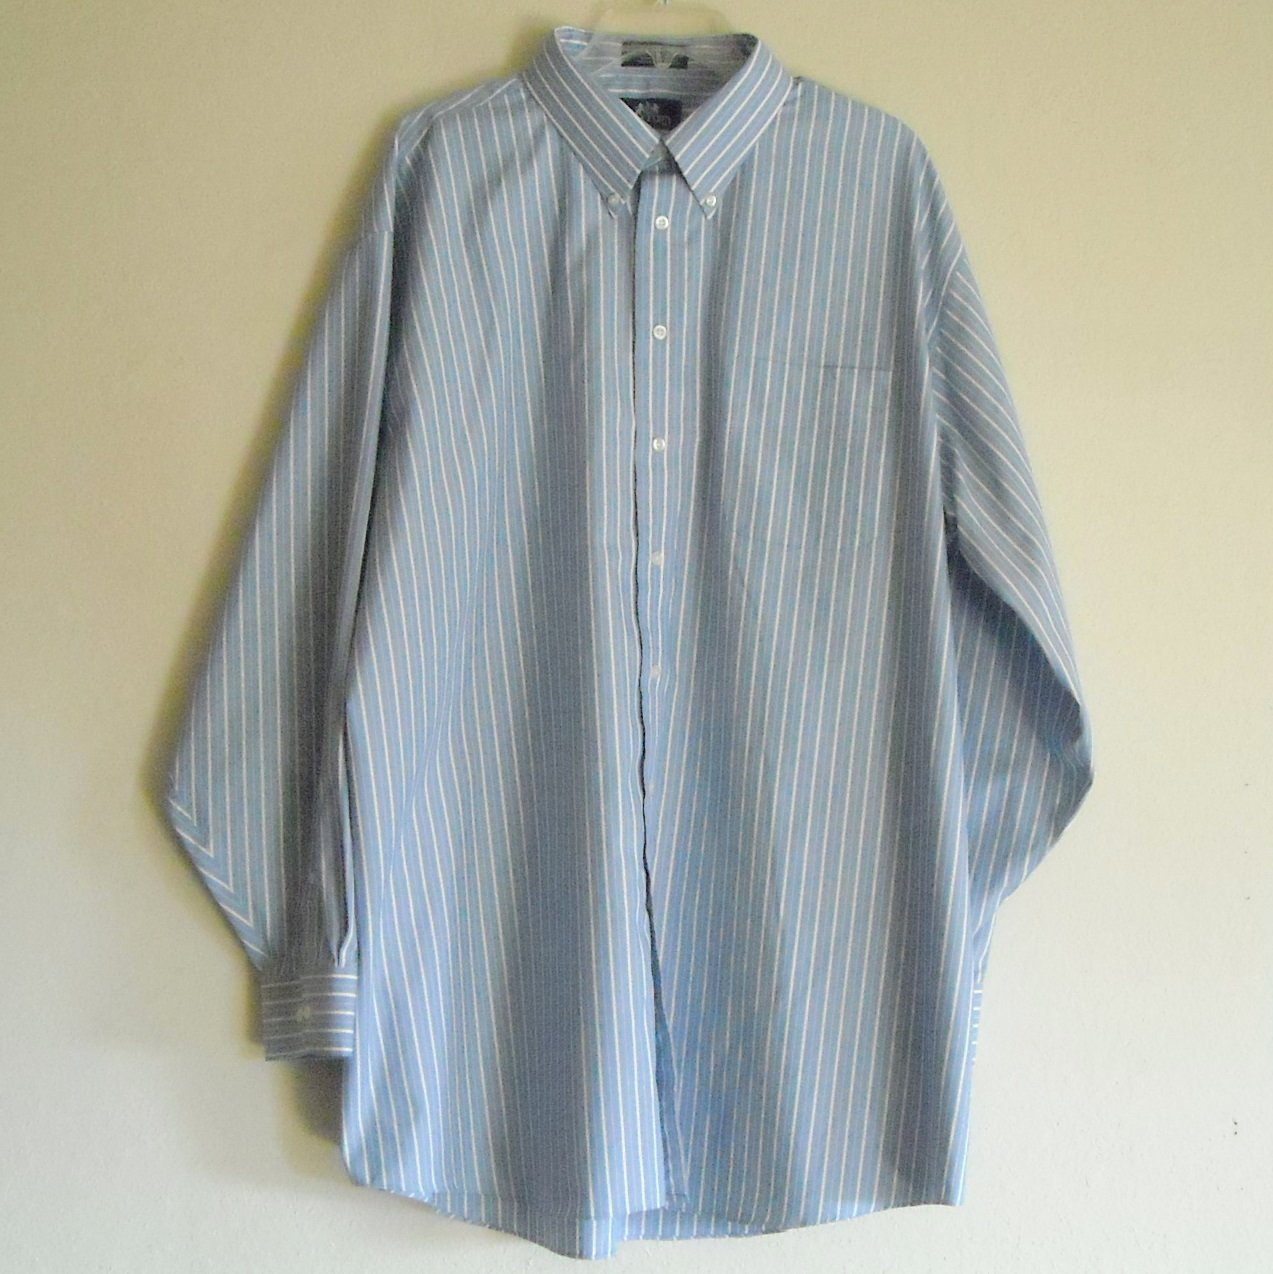 Stafford mens micro pinpoint oxford shirt size 18 5 36 37 for 18 36 37 shirt size